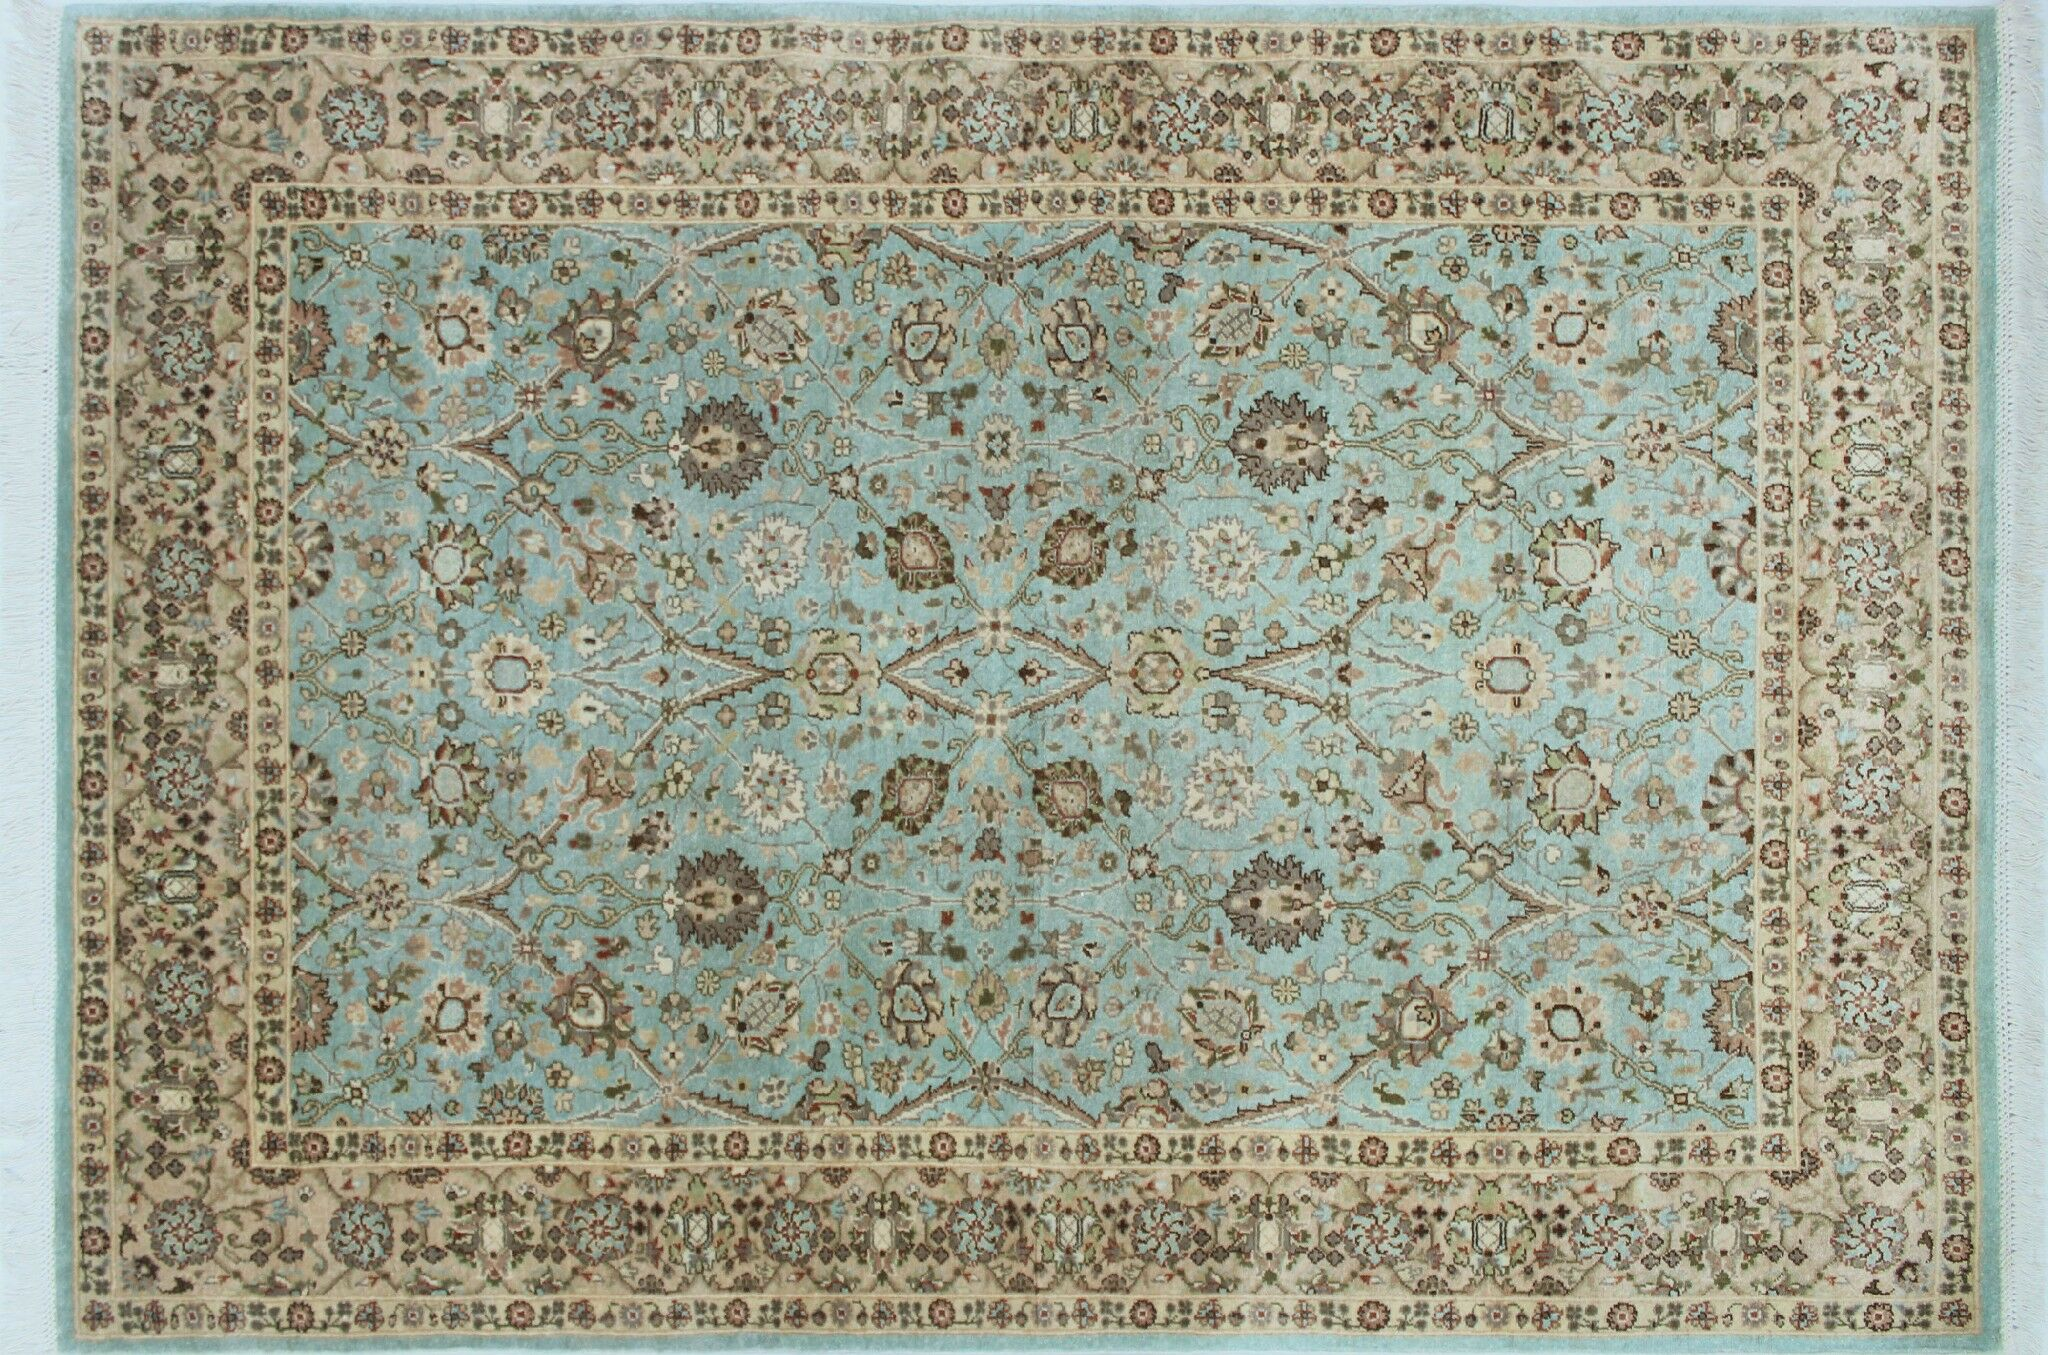 Arthen Hand Knotted Wool Blue Area Rug Rug Size: Rectangle 4'3